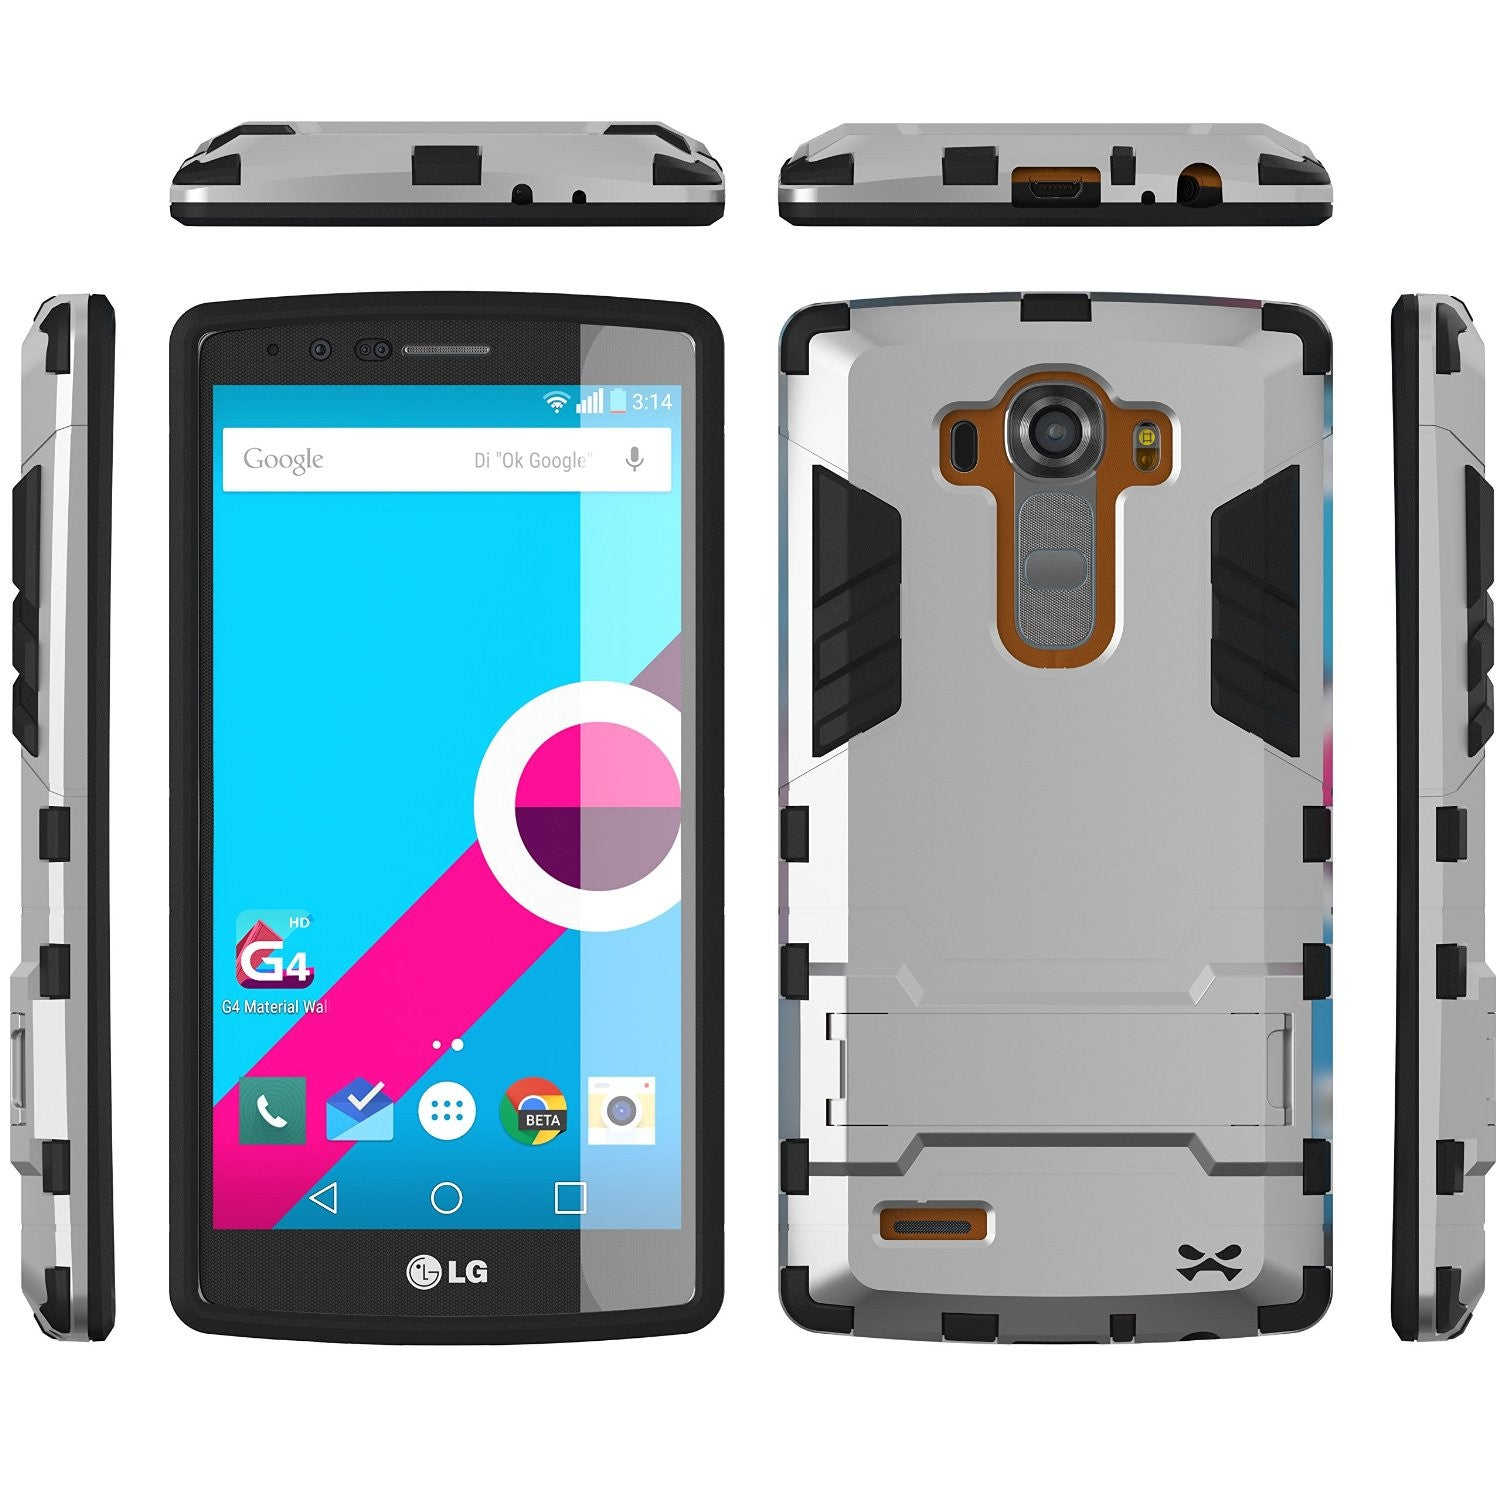 LG G4 Case Ghostek Armadillo 2.0 Silver w/ Tempered Glass Screen Protector | Slim Armor | Kickstand